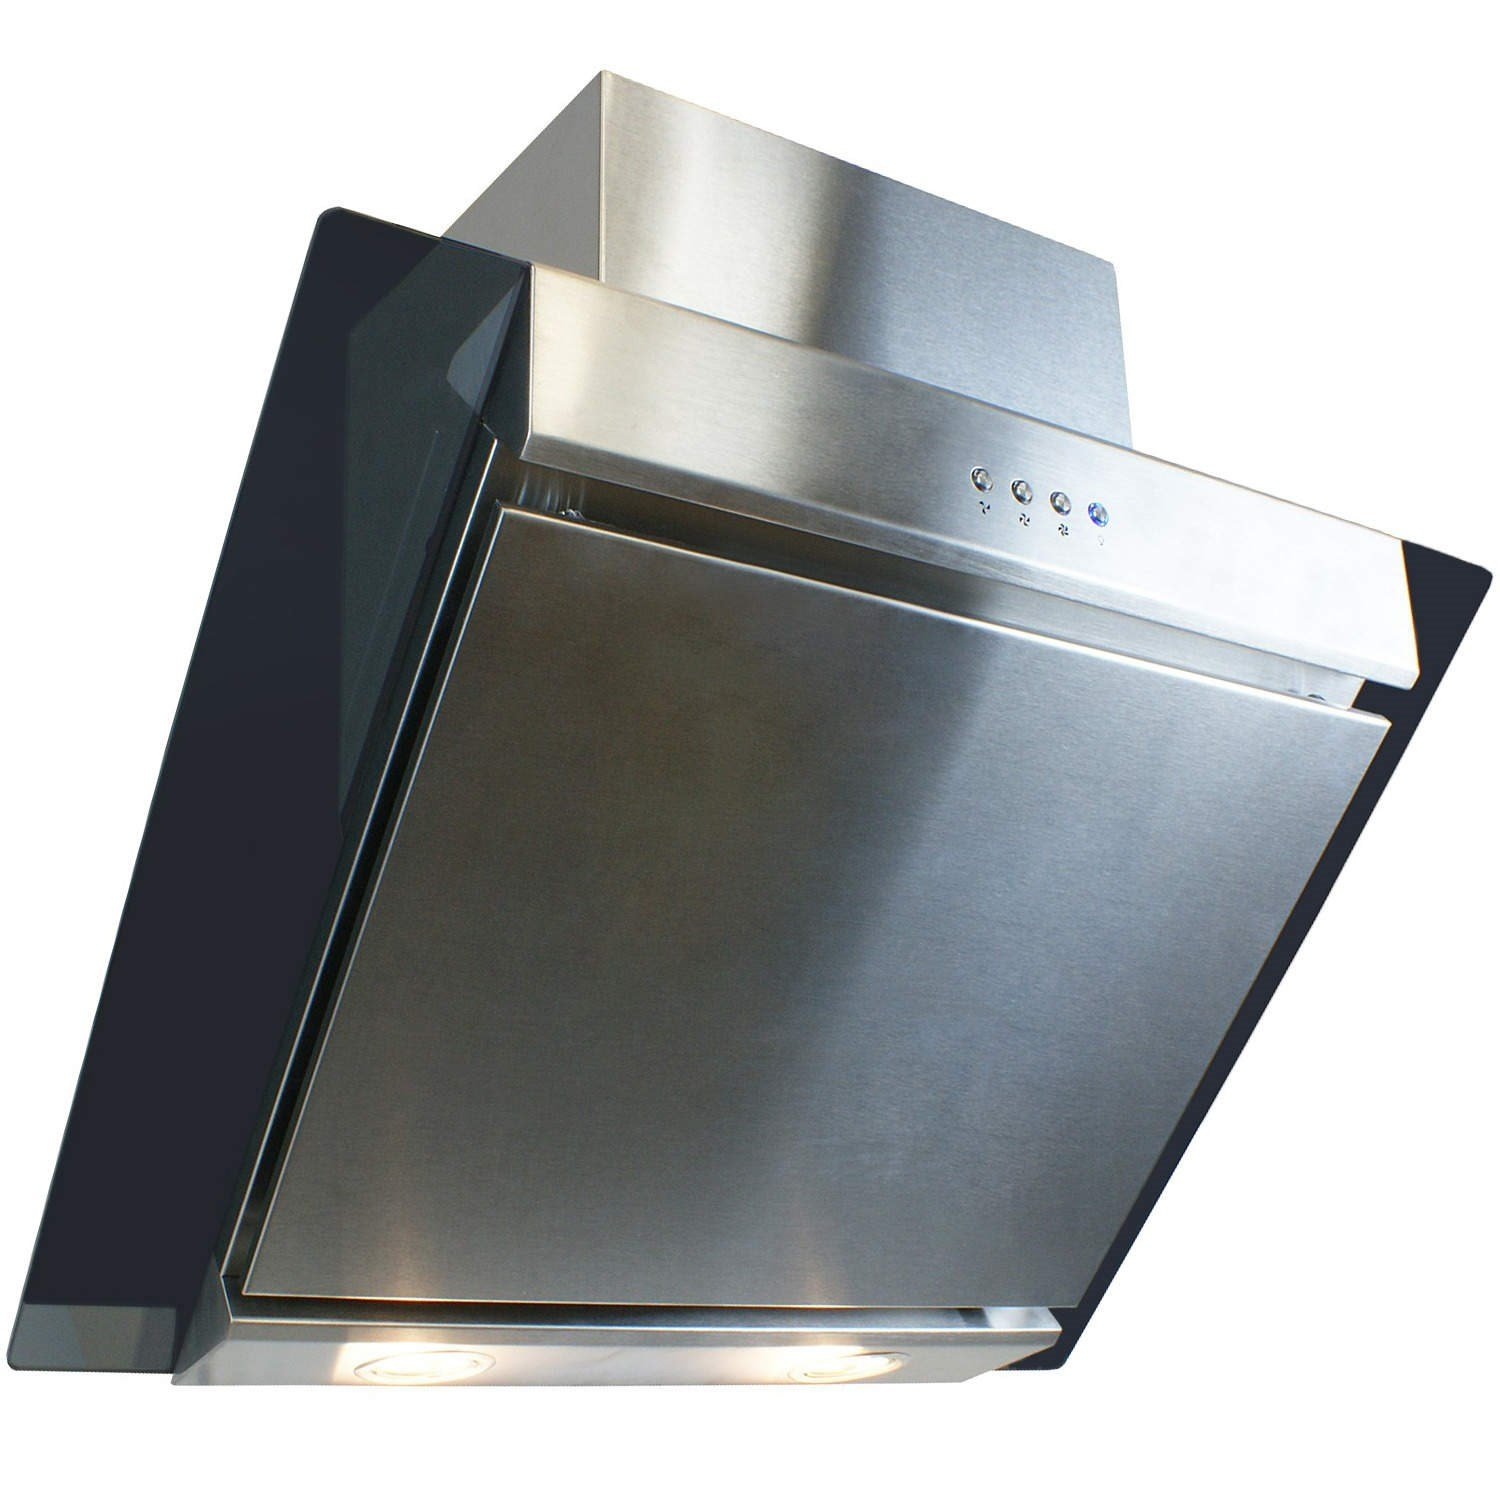 electriQ 60cm Angled Glass and Steel Designer Cooker Hood - 5 Years Parts and 2 Years Labour